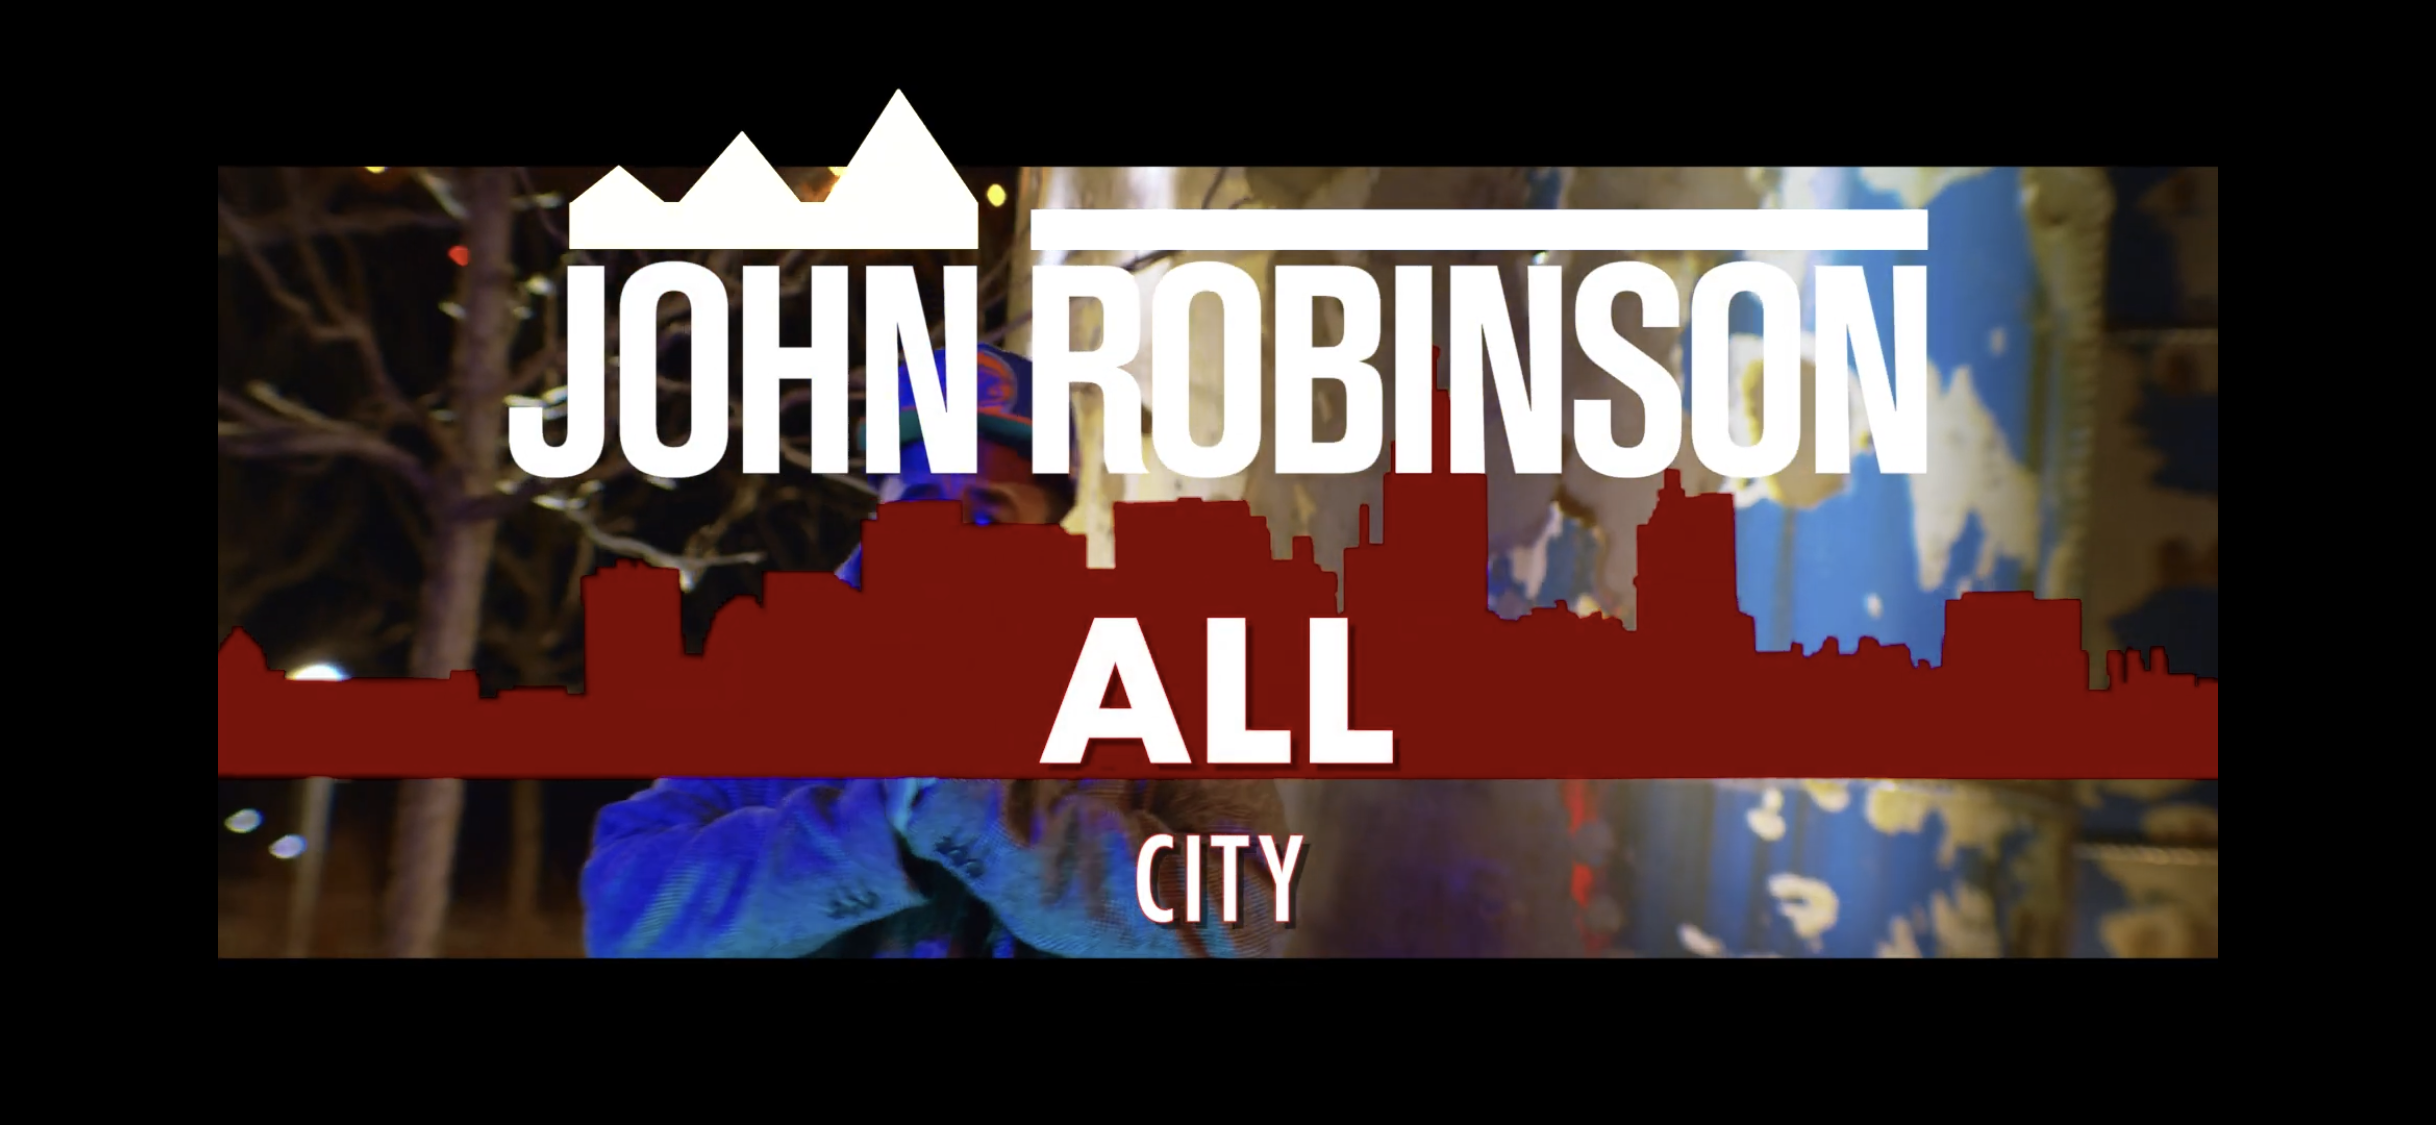 John Robinson - All City / Honor Roll Flows / The LvL Up [video]